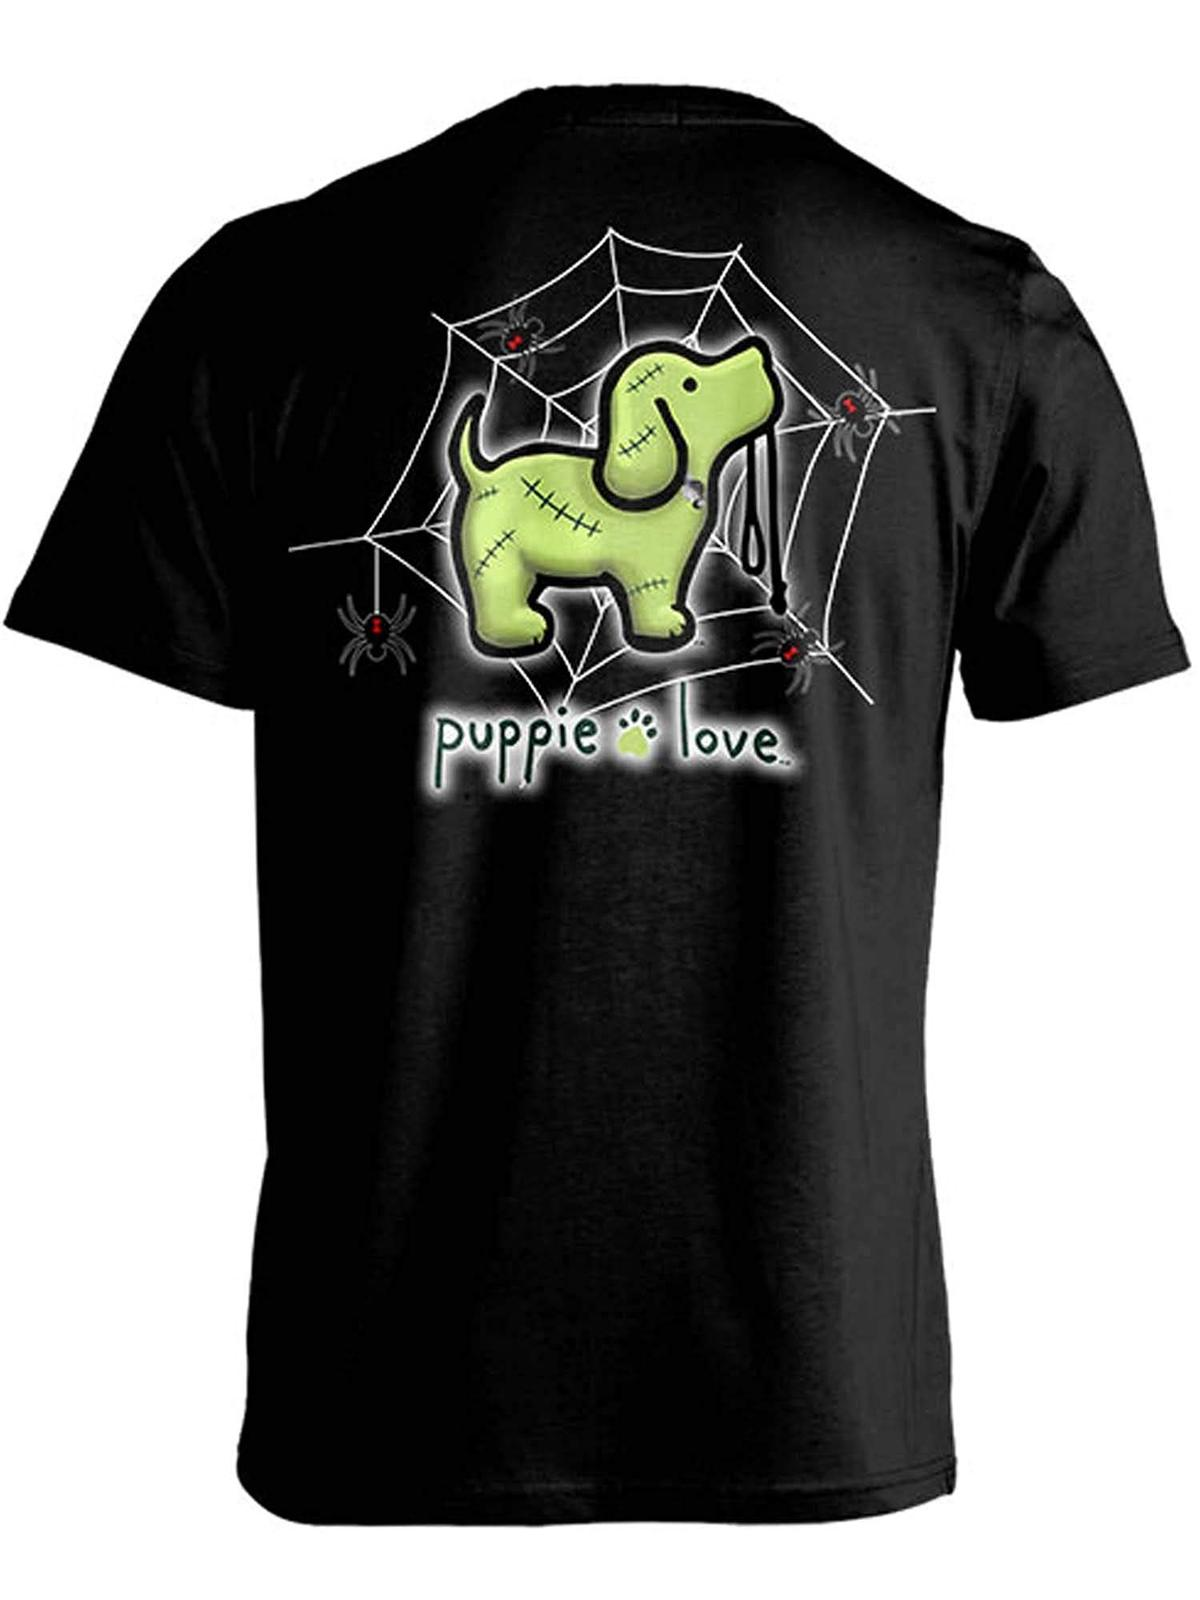 Puppie Love Rescue Dog Adult Unisex Short Sleeve Graphic TShirt,Frankenstein Pup